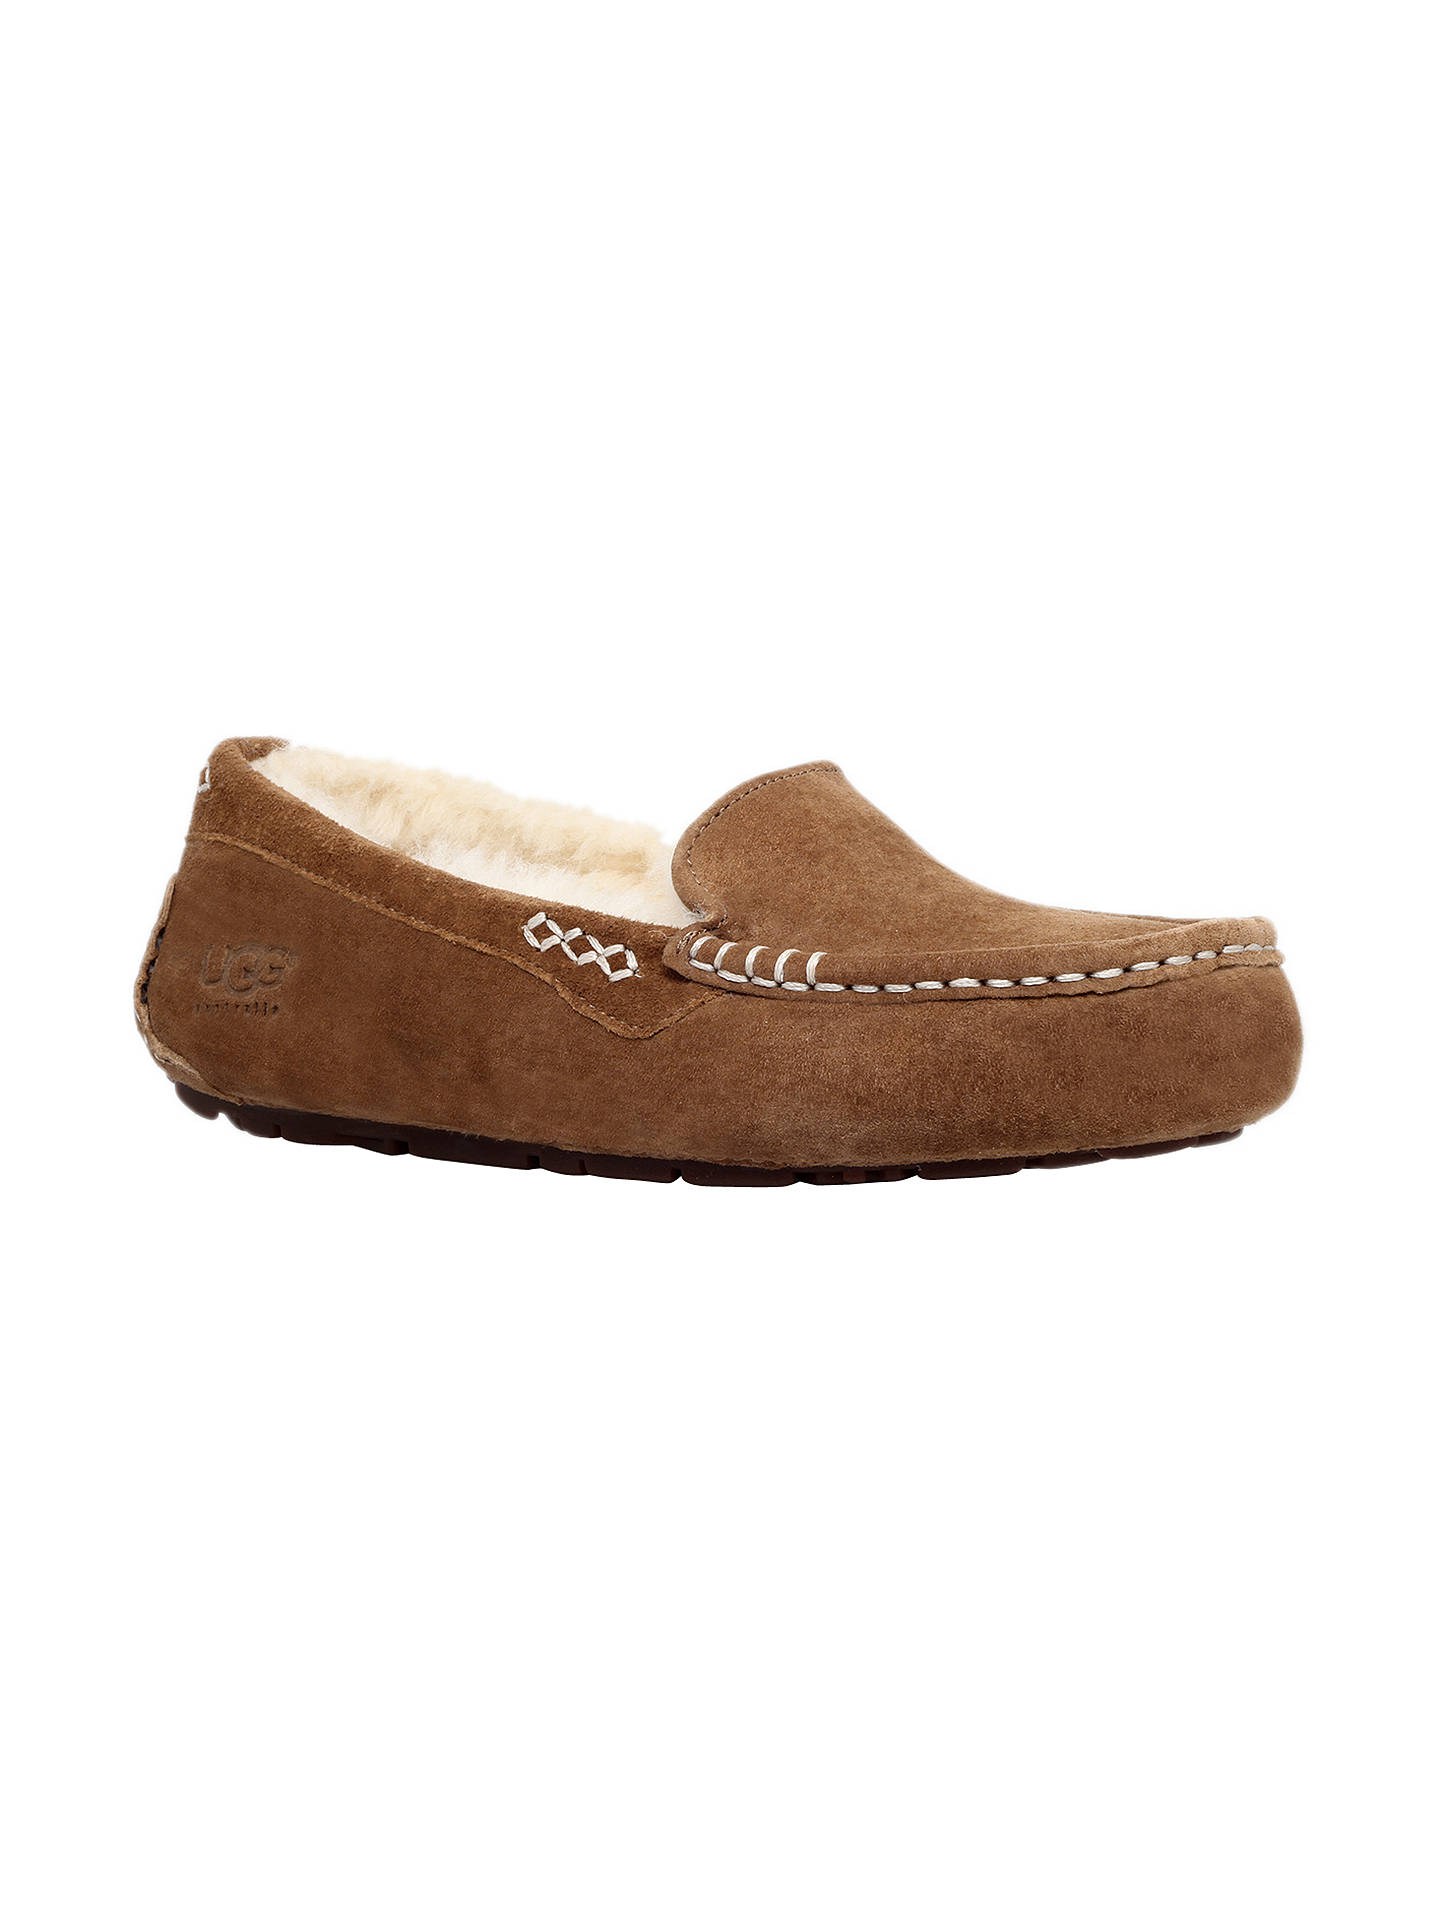 3e6333e8d8c Buy UGG Ansley Suede Slippers